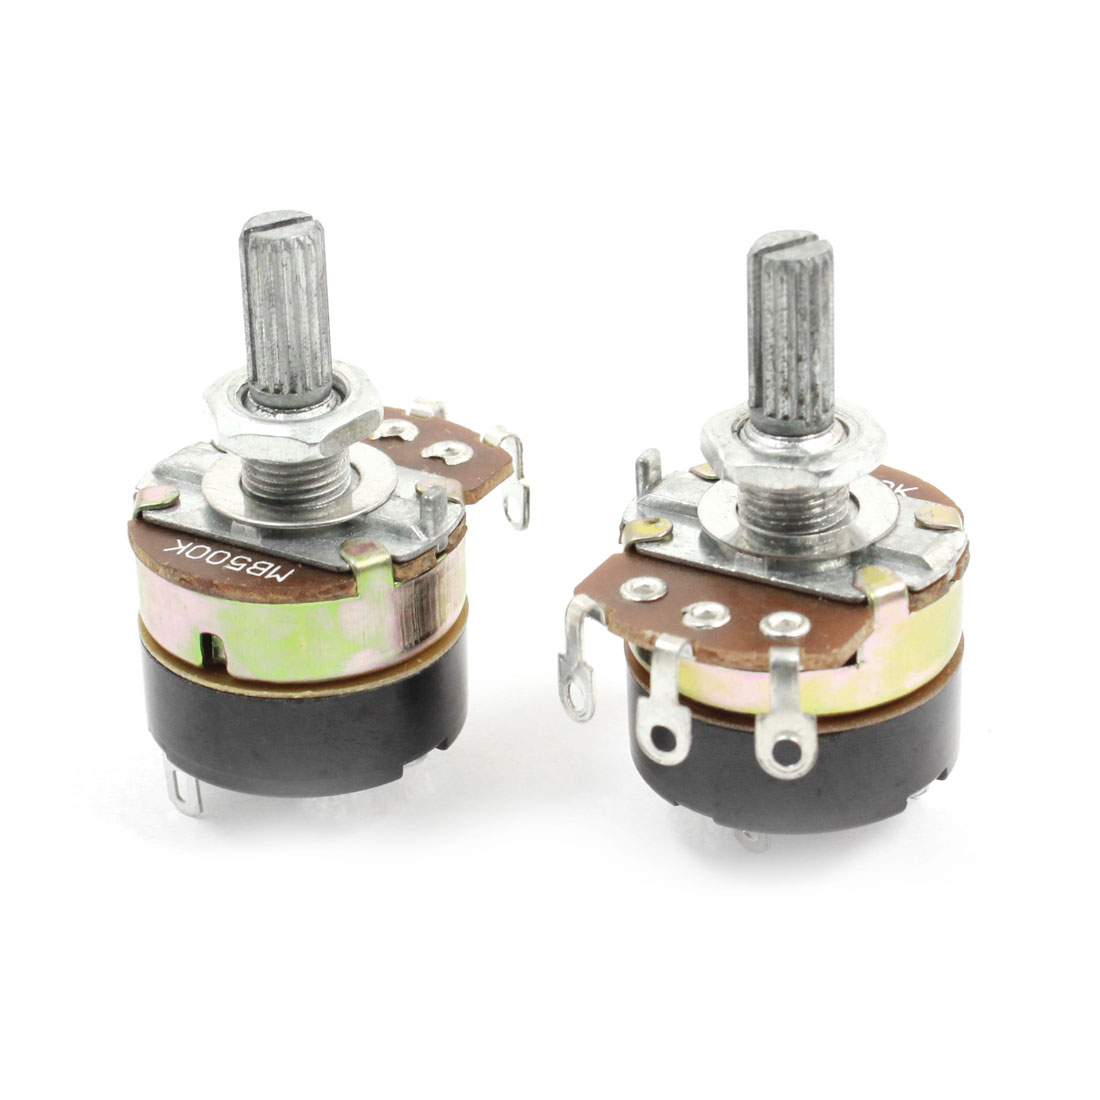 2Pcs B500K 500K Ohm Single Linear Rotary Switch Carbon Potentiometers